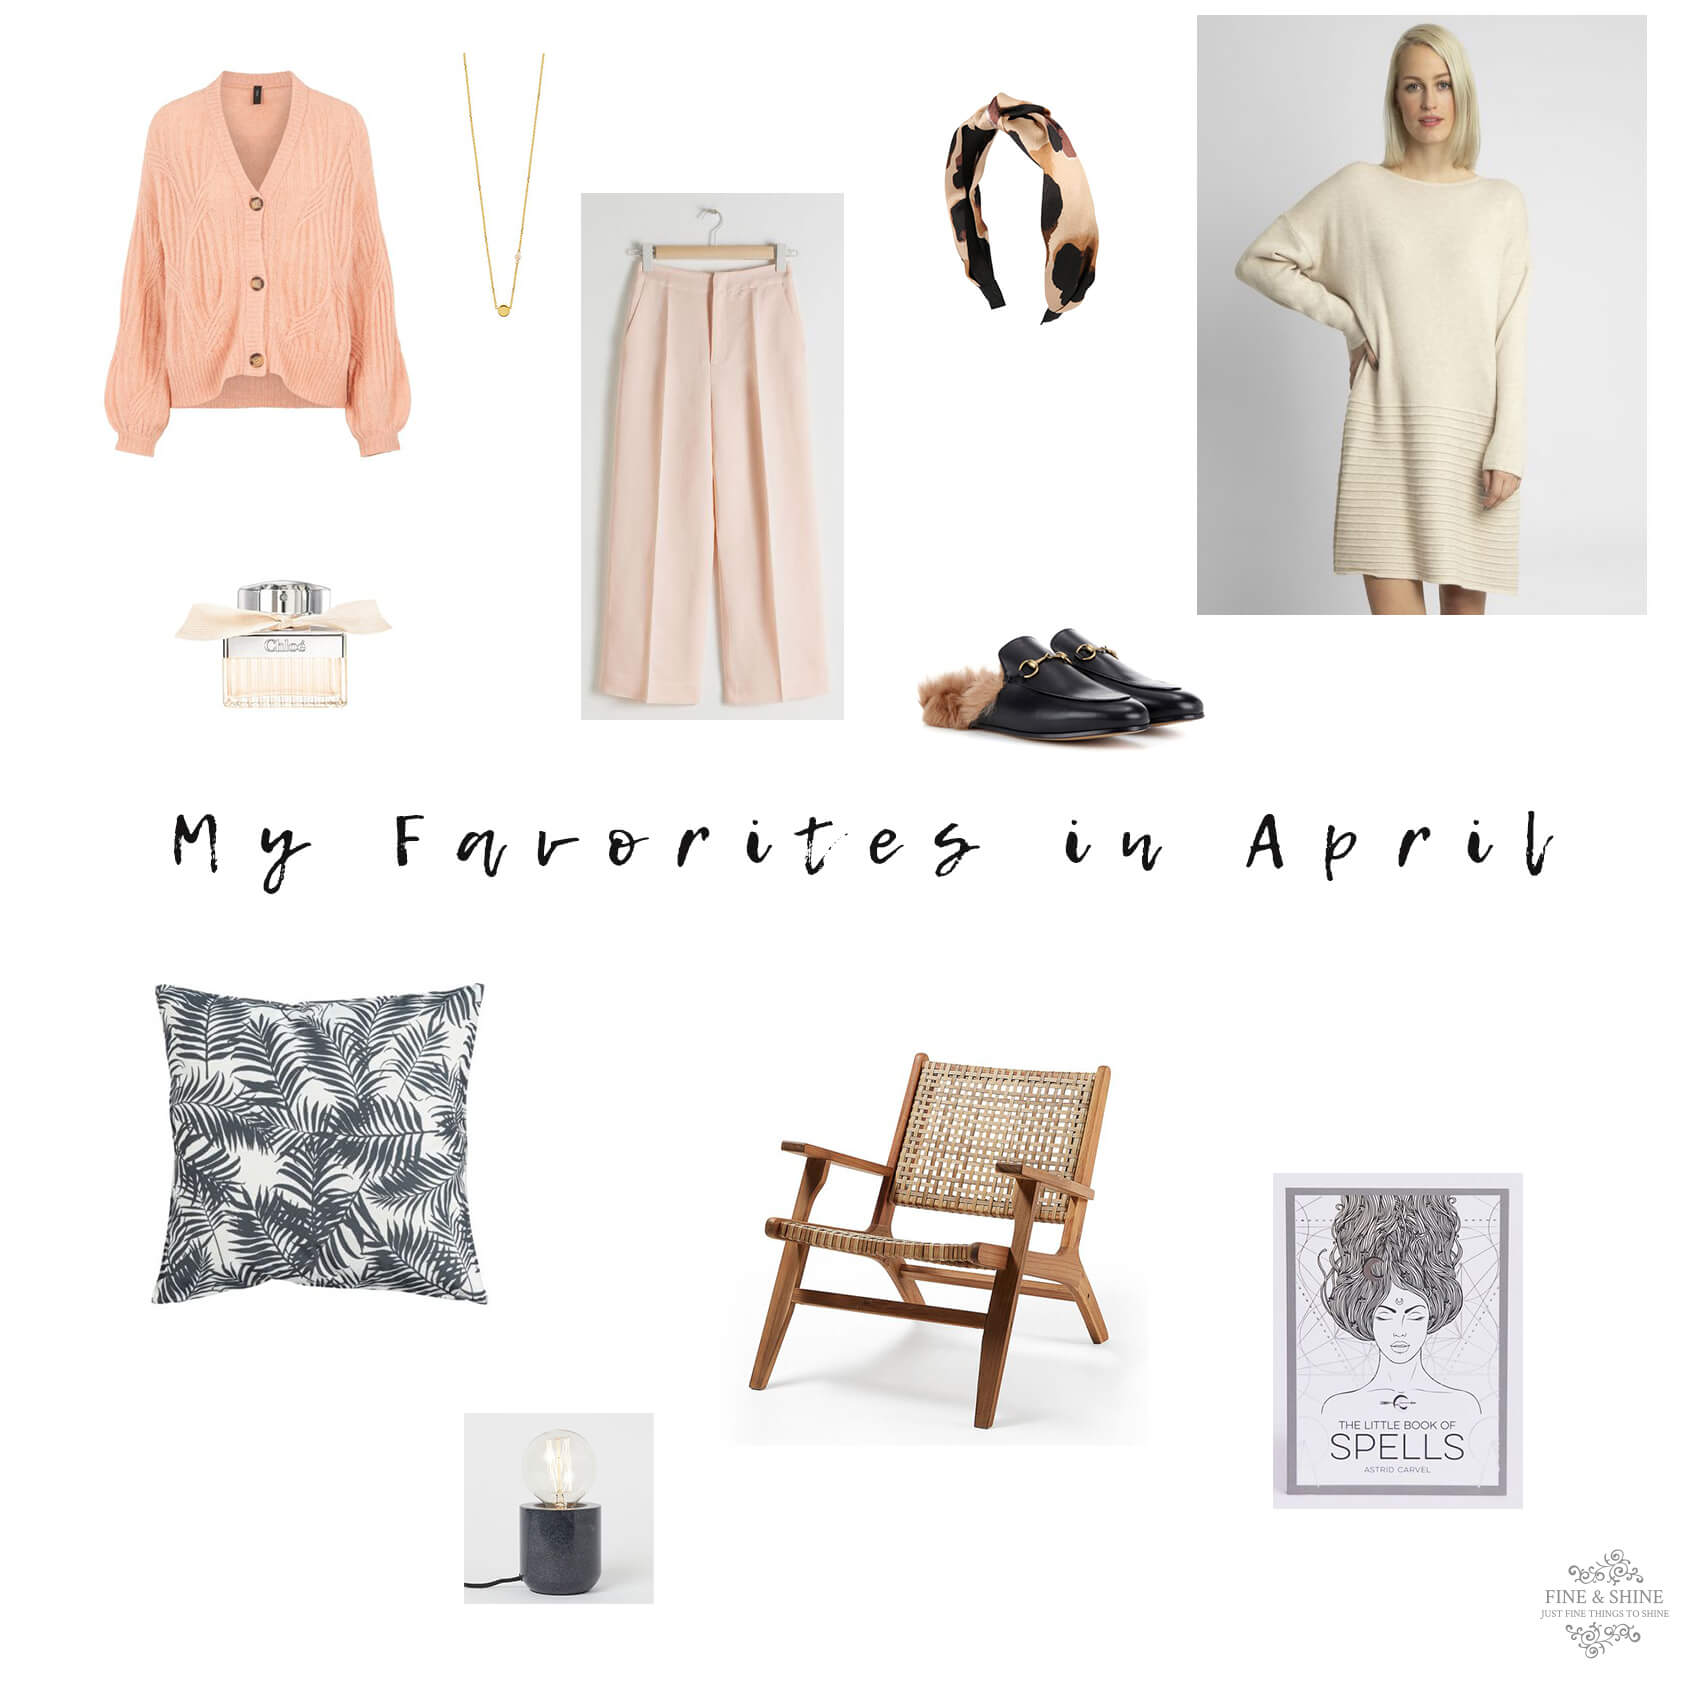 My Favorites in April